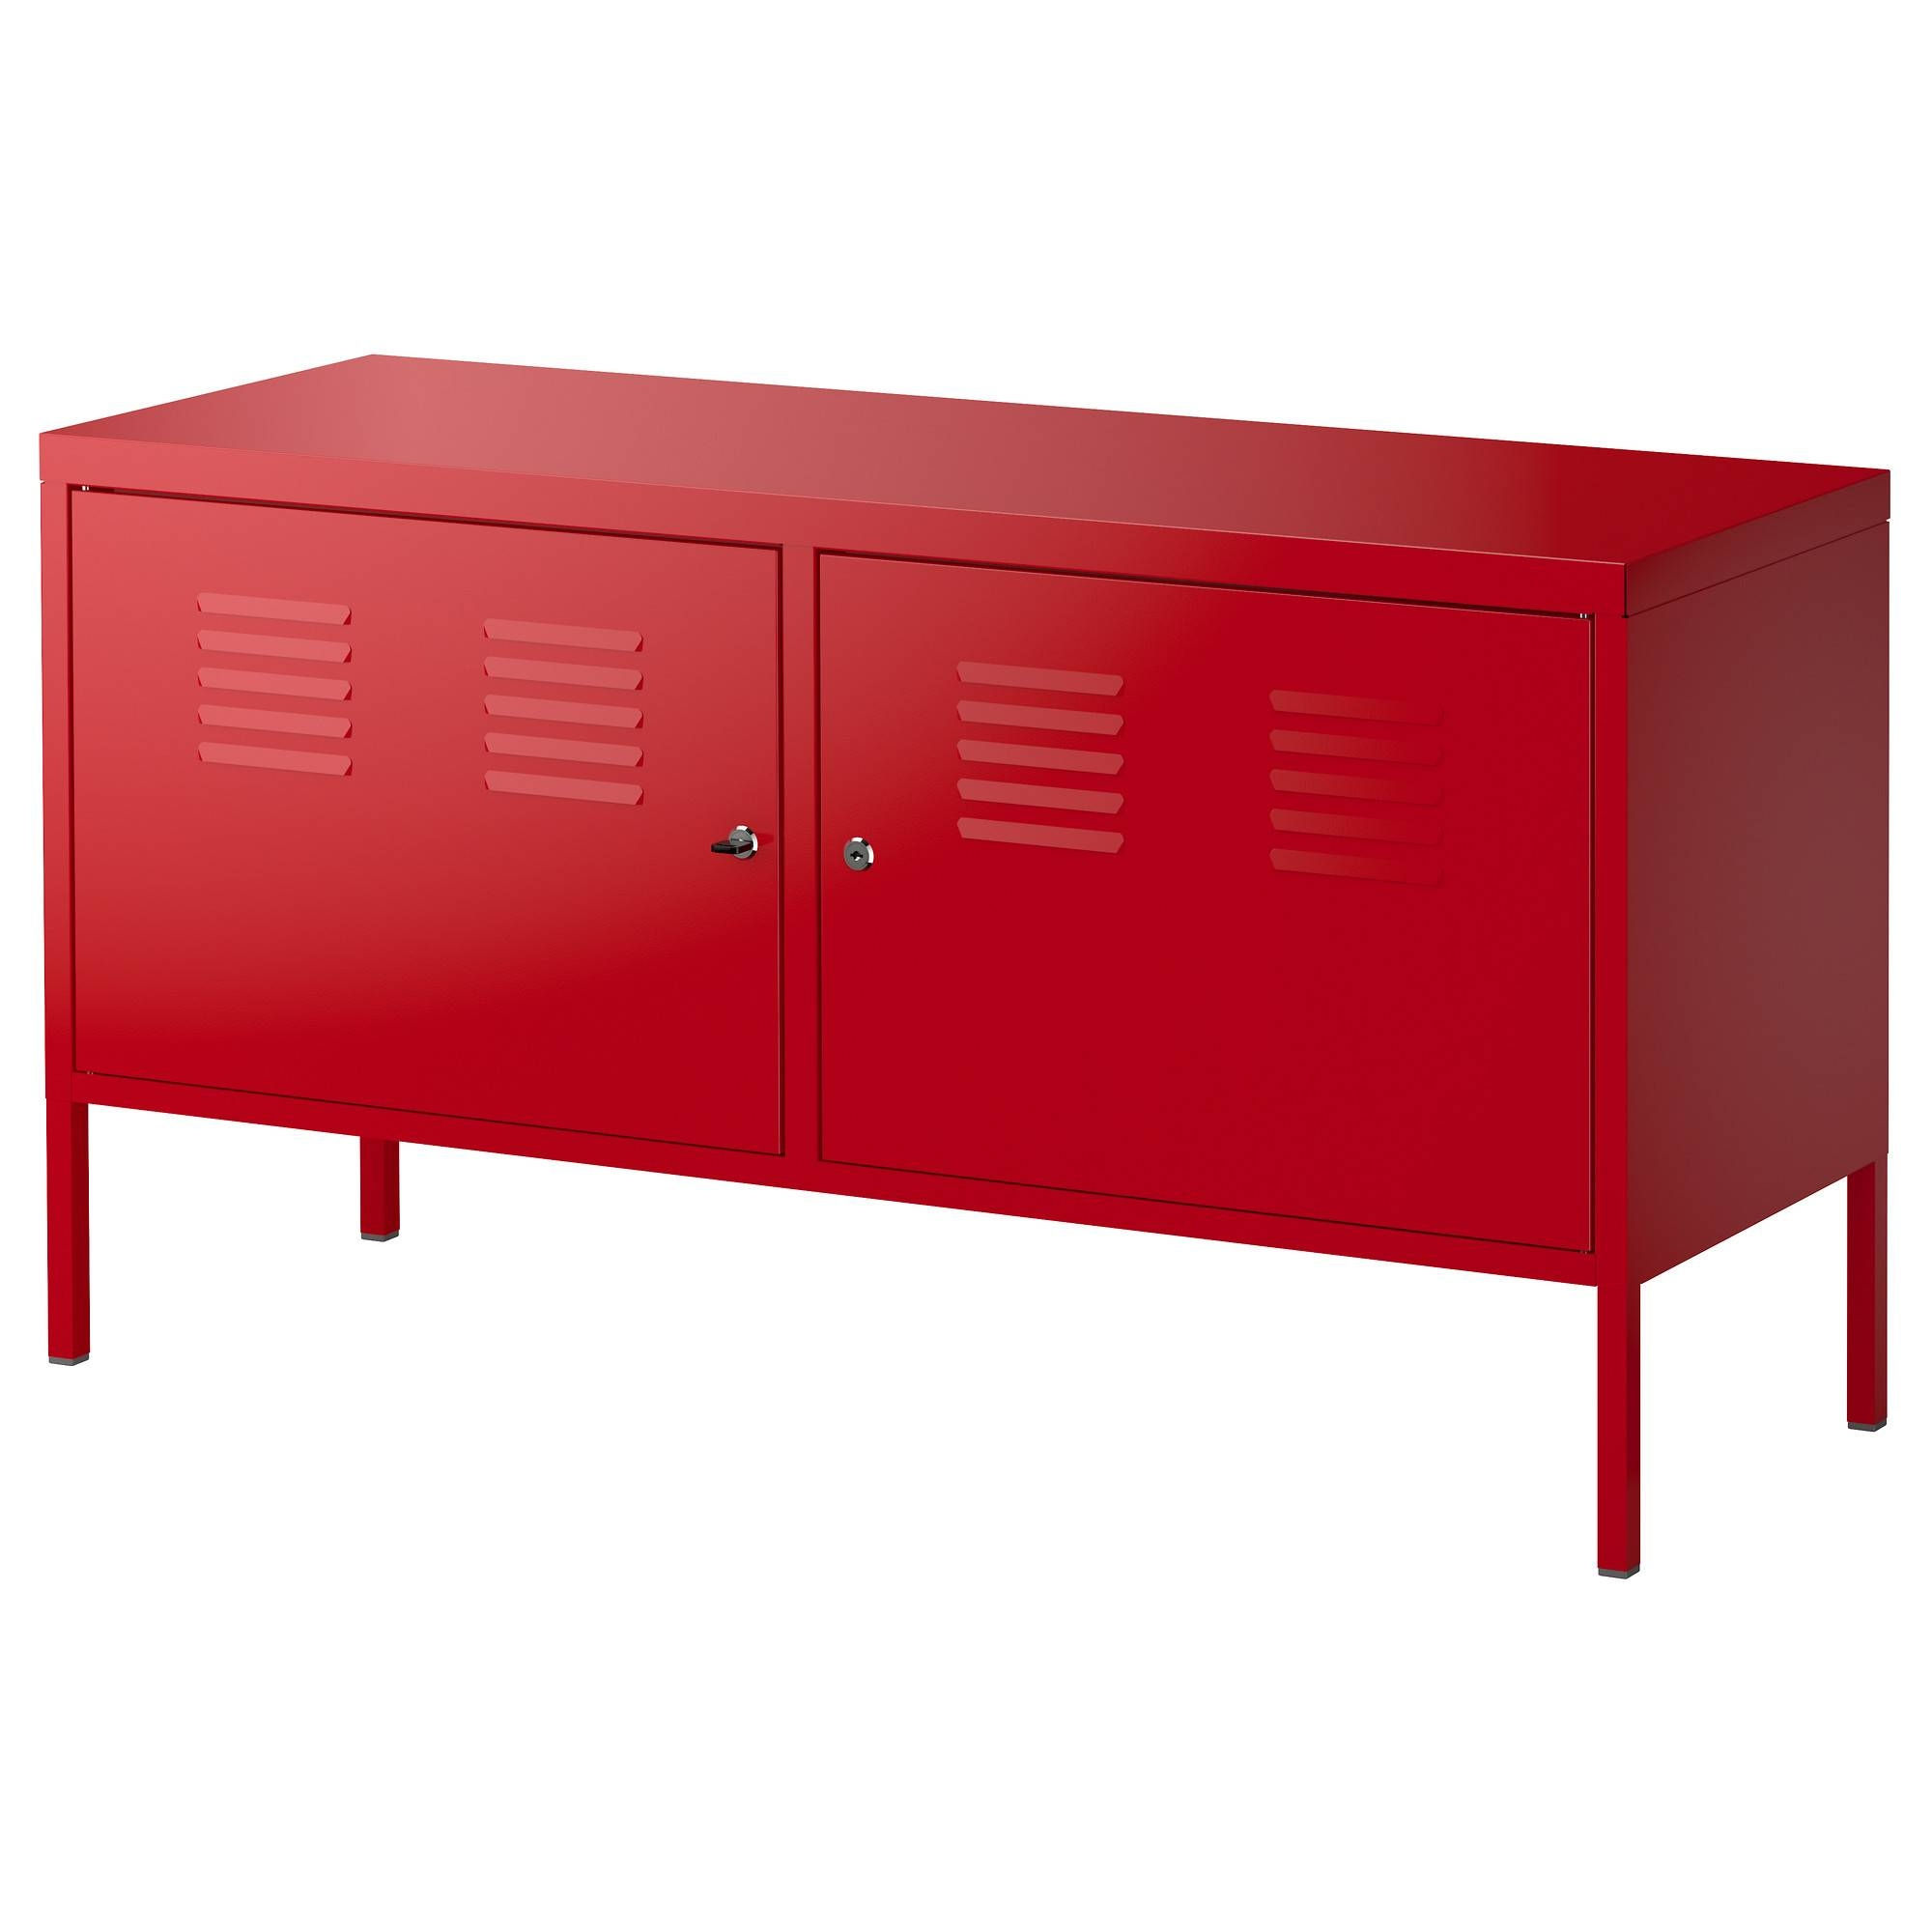 Console Tables, Sofa Tables & Sideboards – Ikea With 80 Inch Sideboards (View 19 of 30)